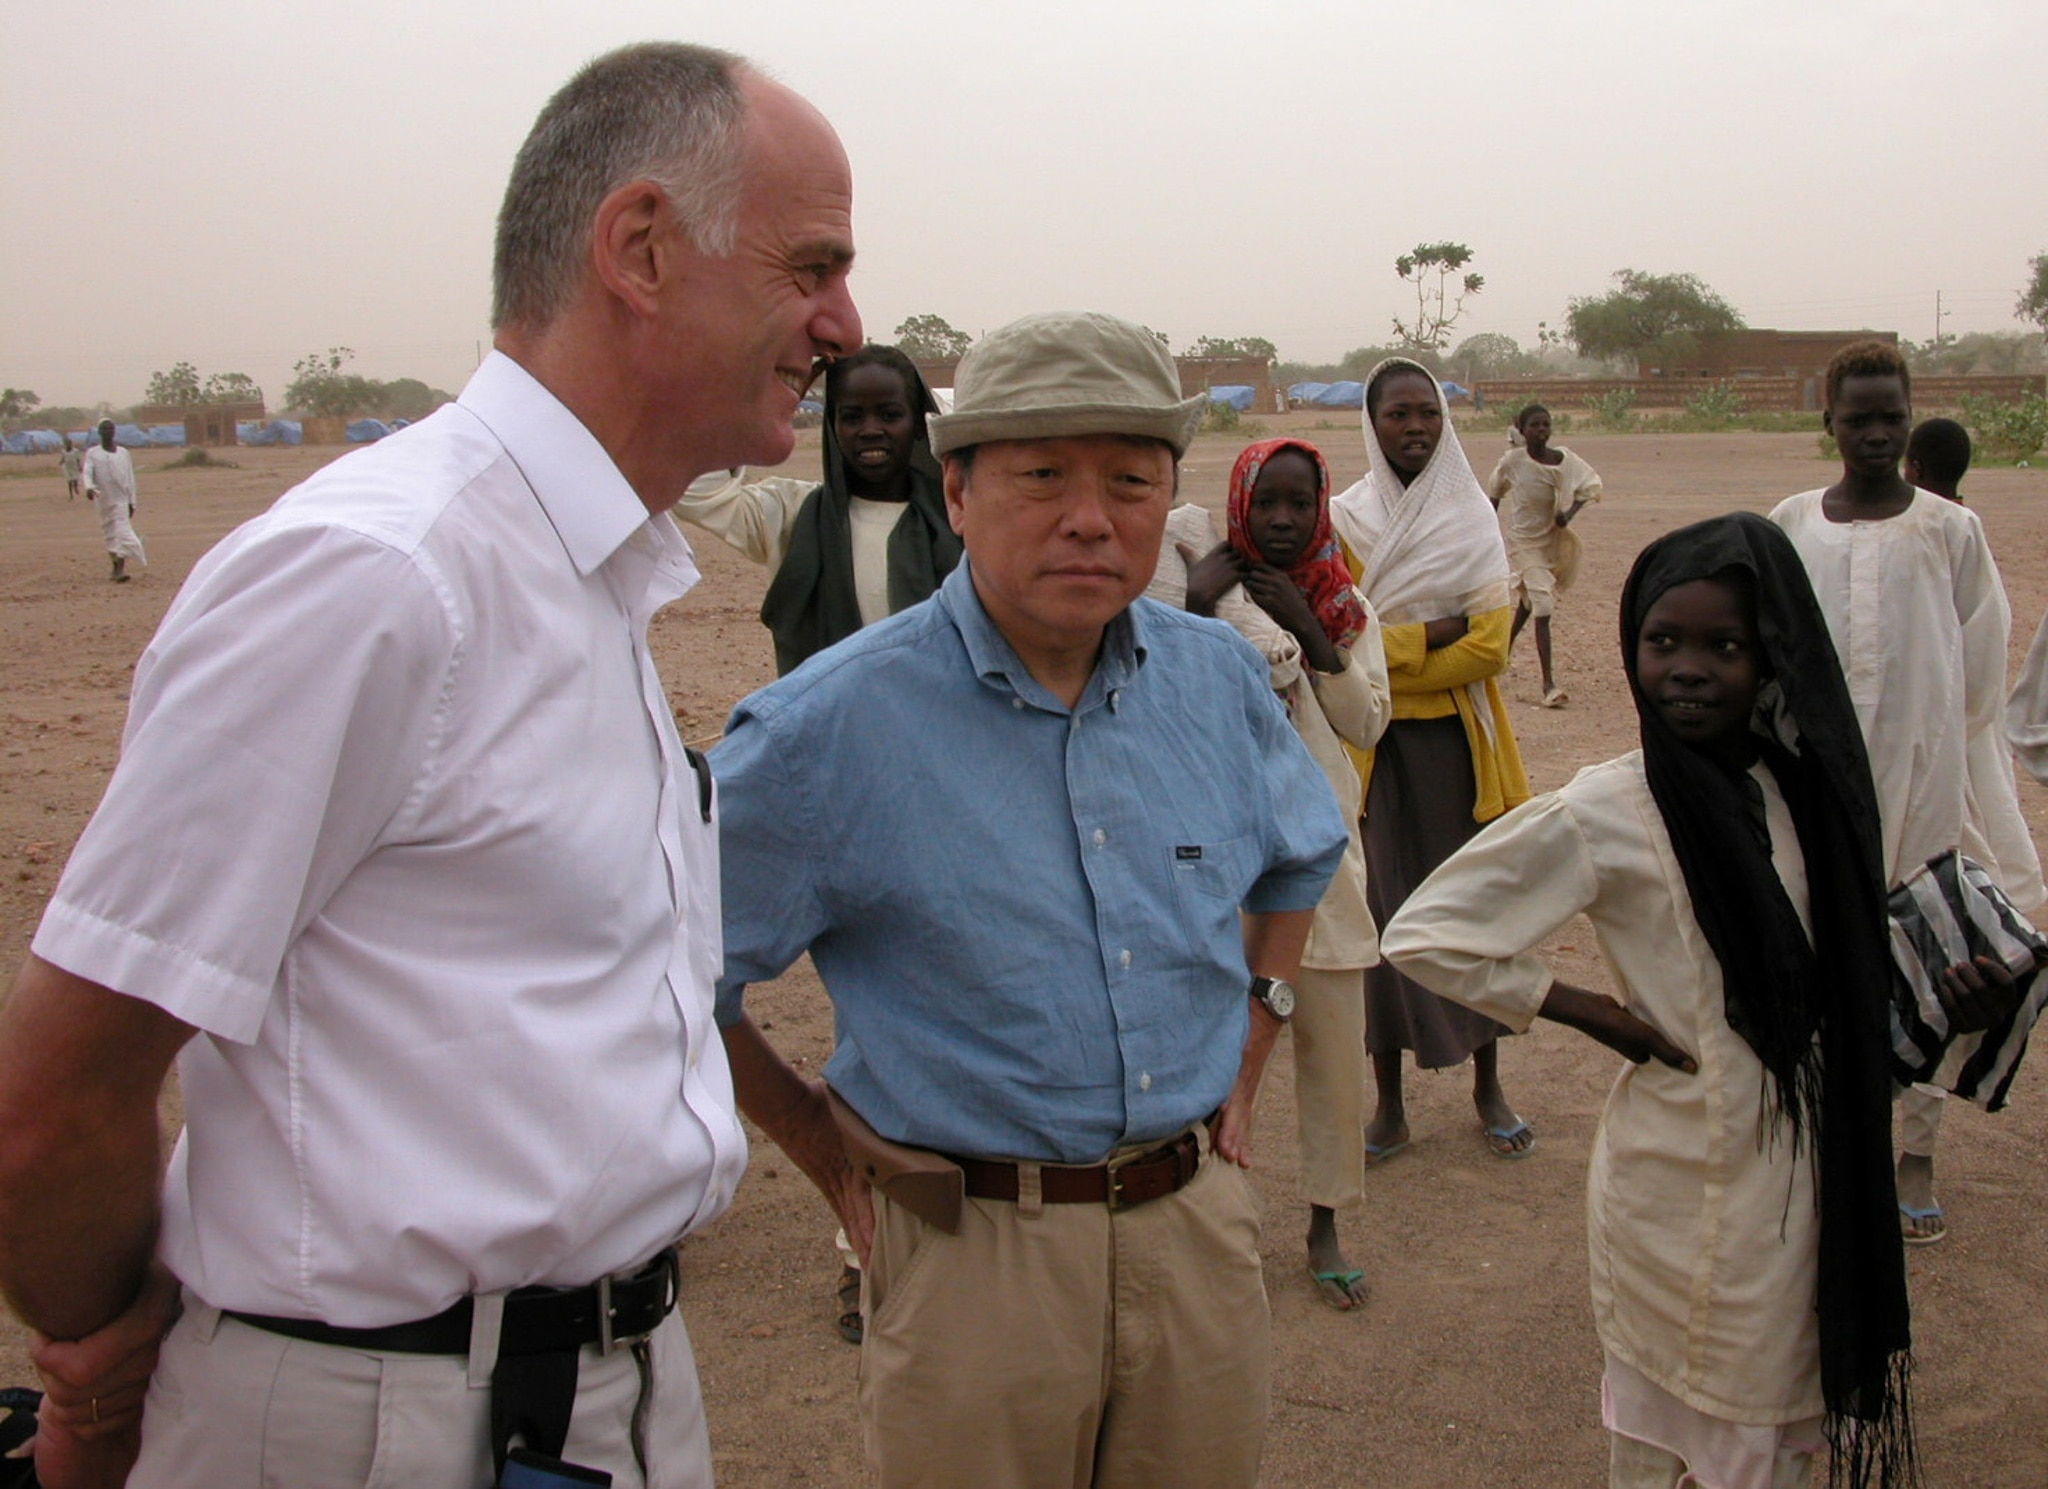 People standing in a dirt field talking (World Food Prize)